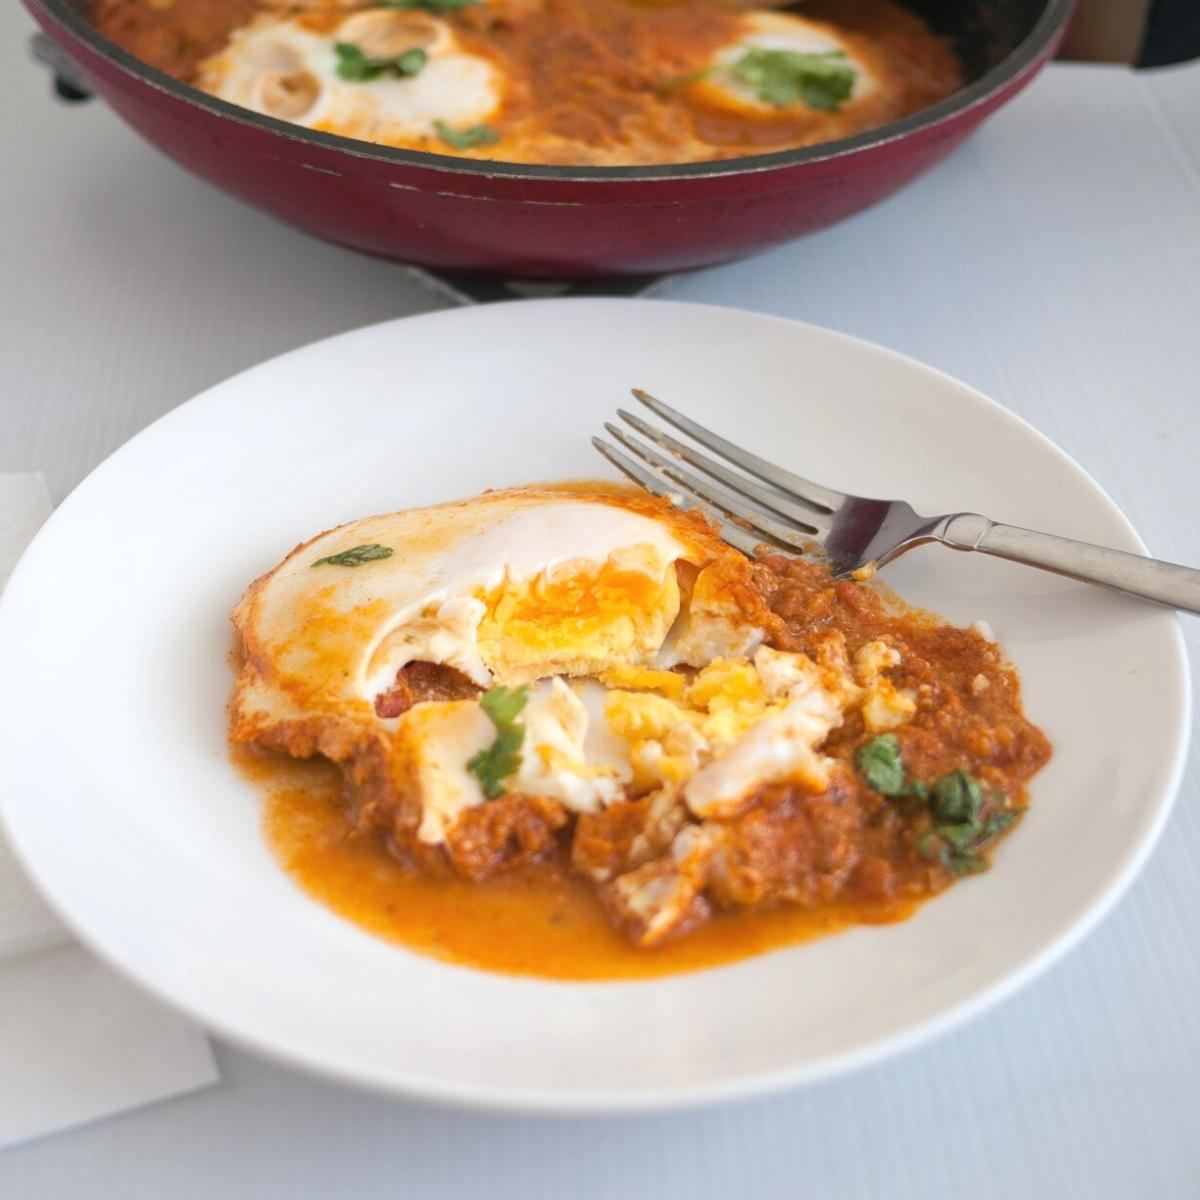 A plate with egg curry and fork.